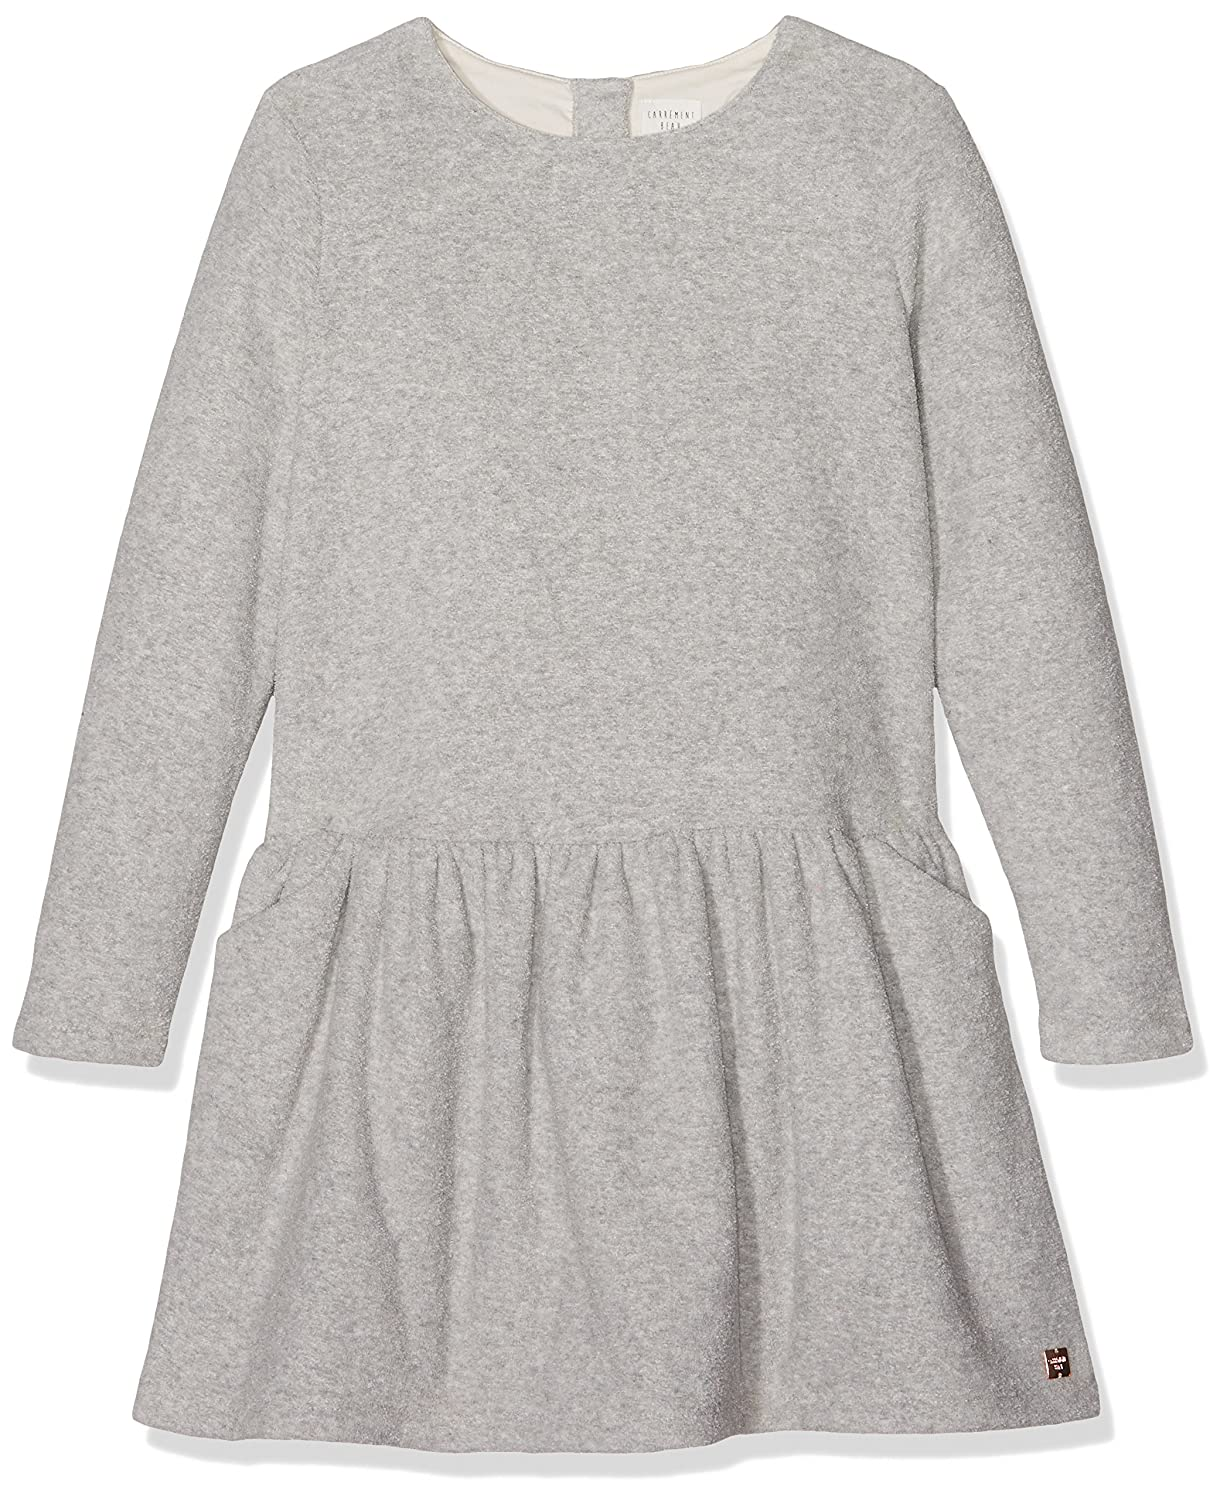 Carrément Beau Girl's Robe Dress Y12108